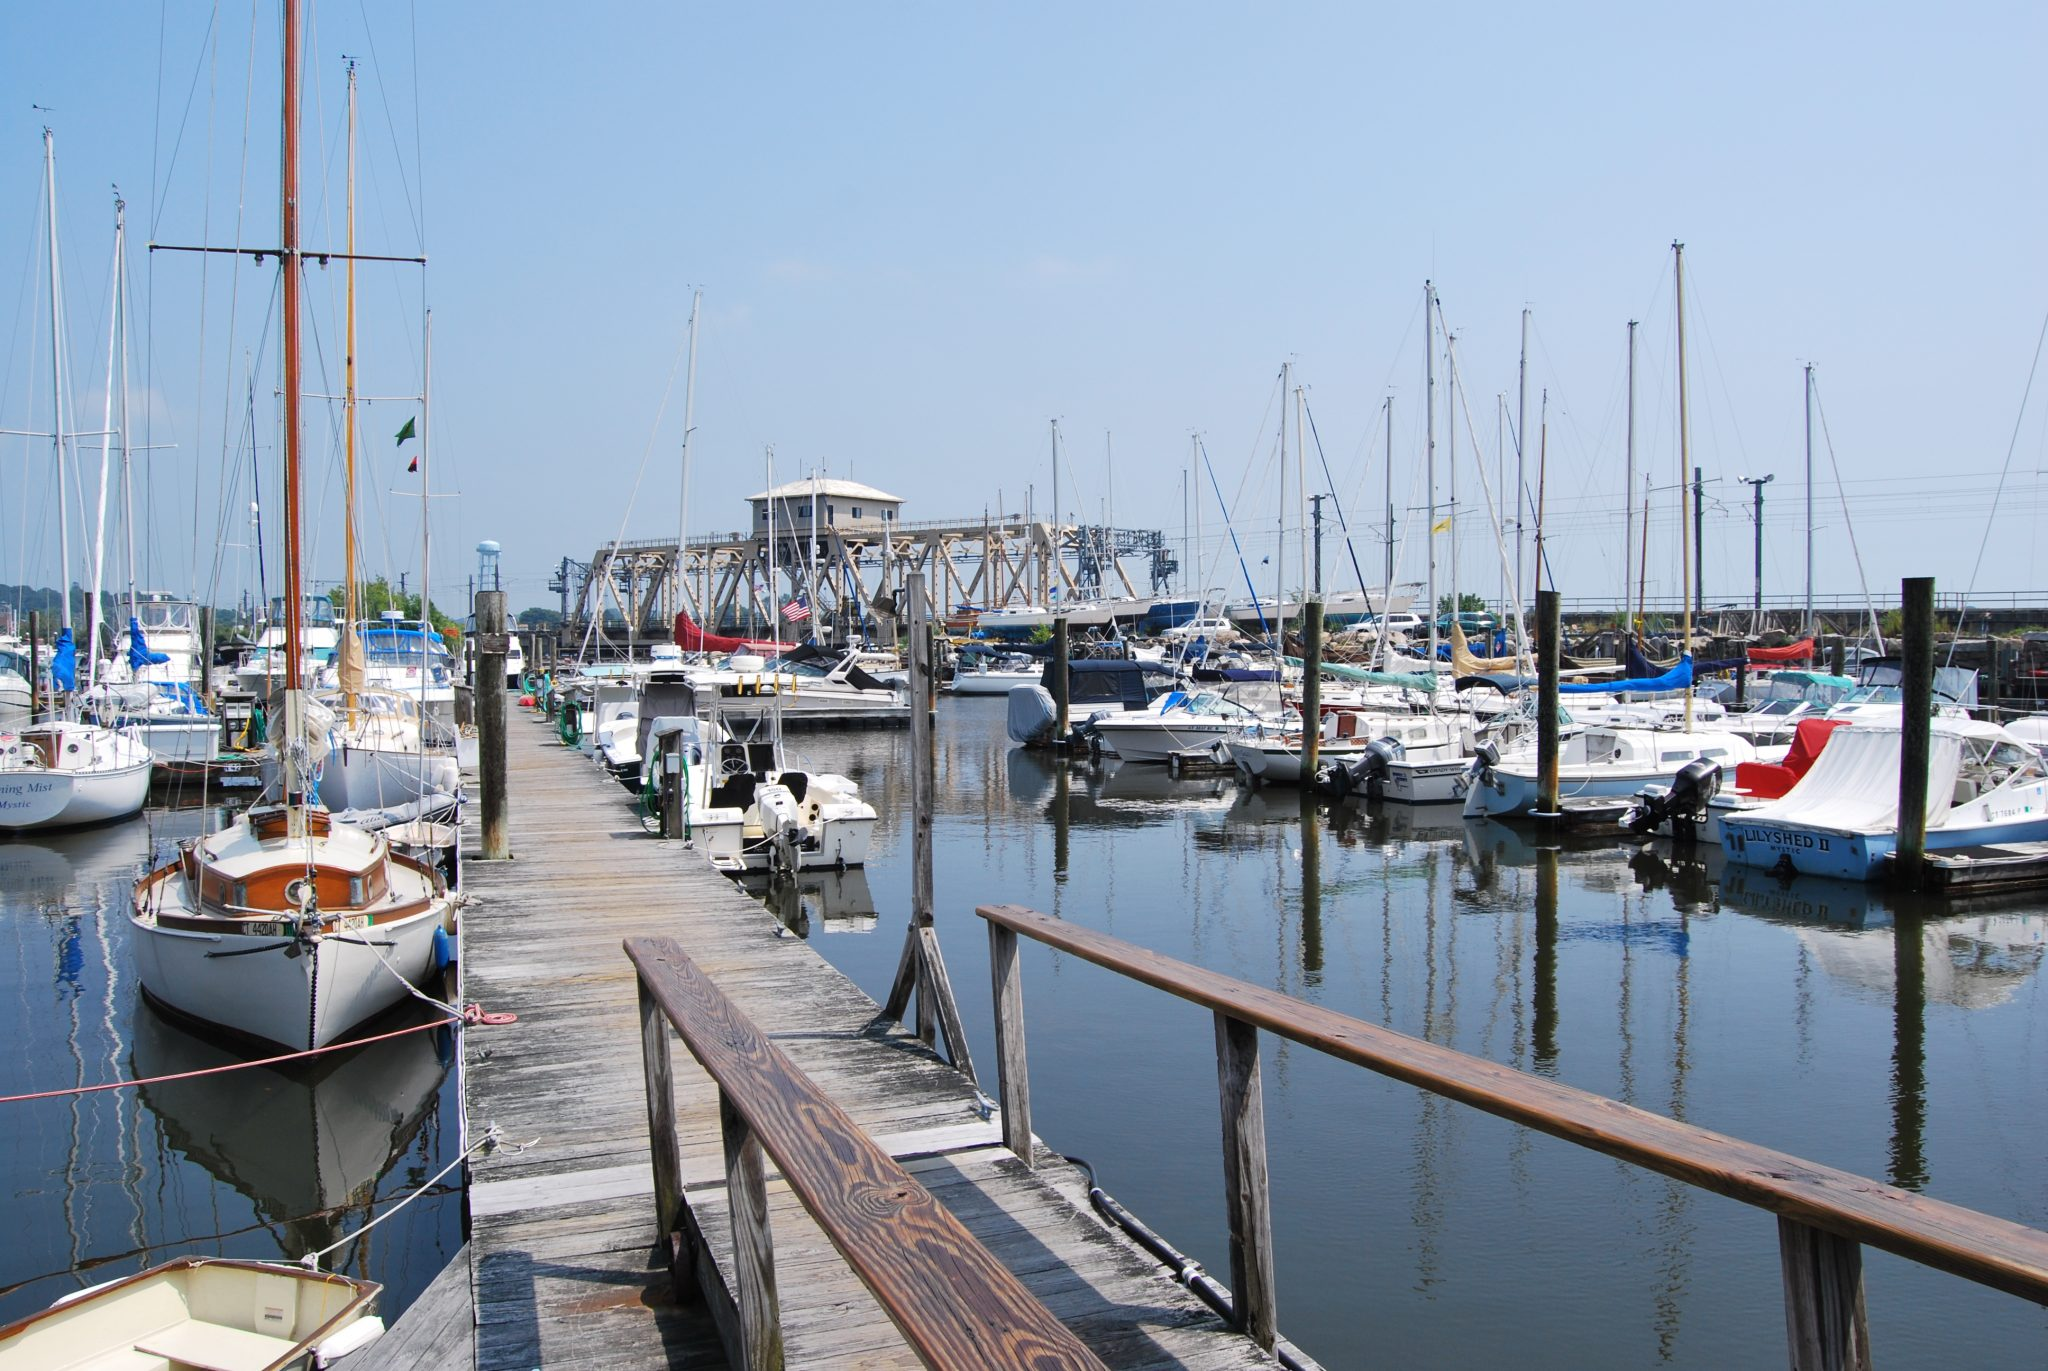 5 Great Small Towns on I-95